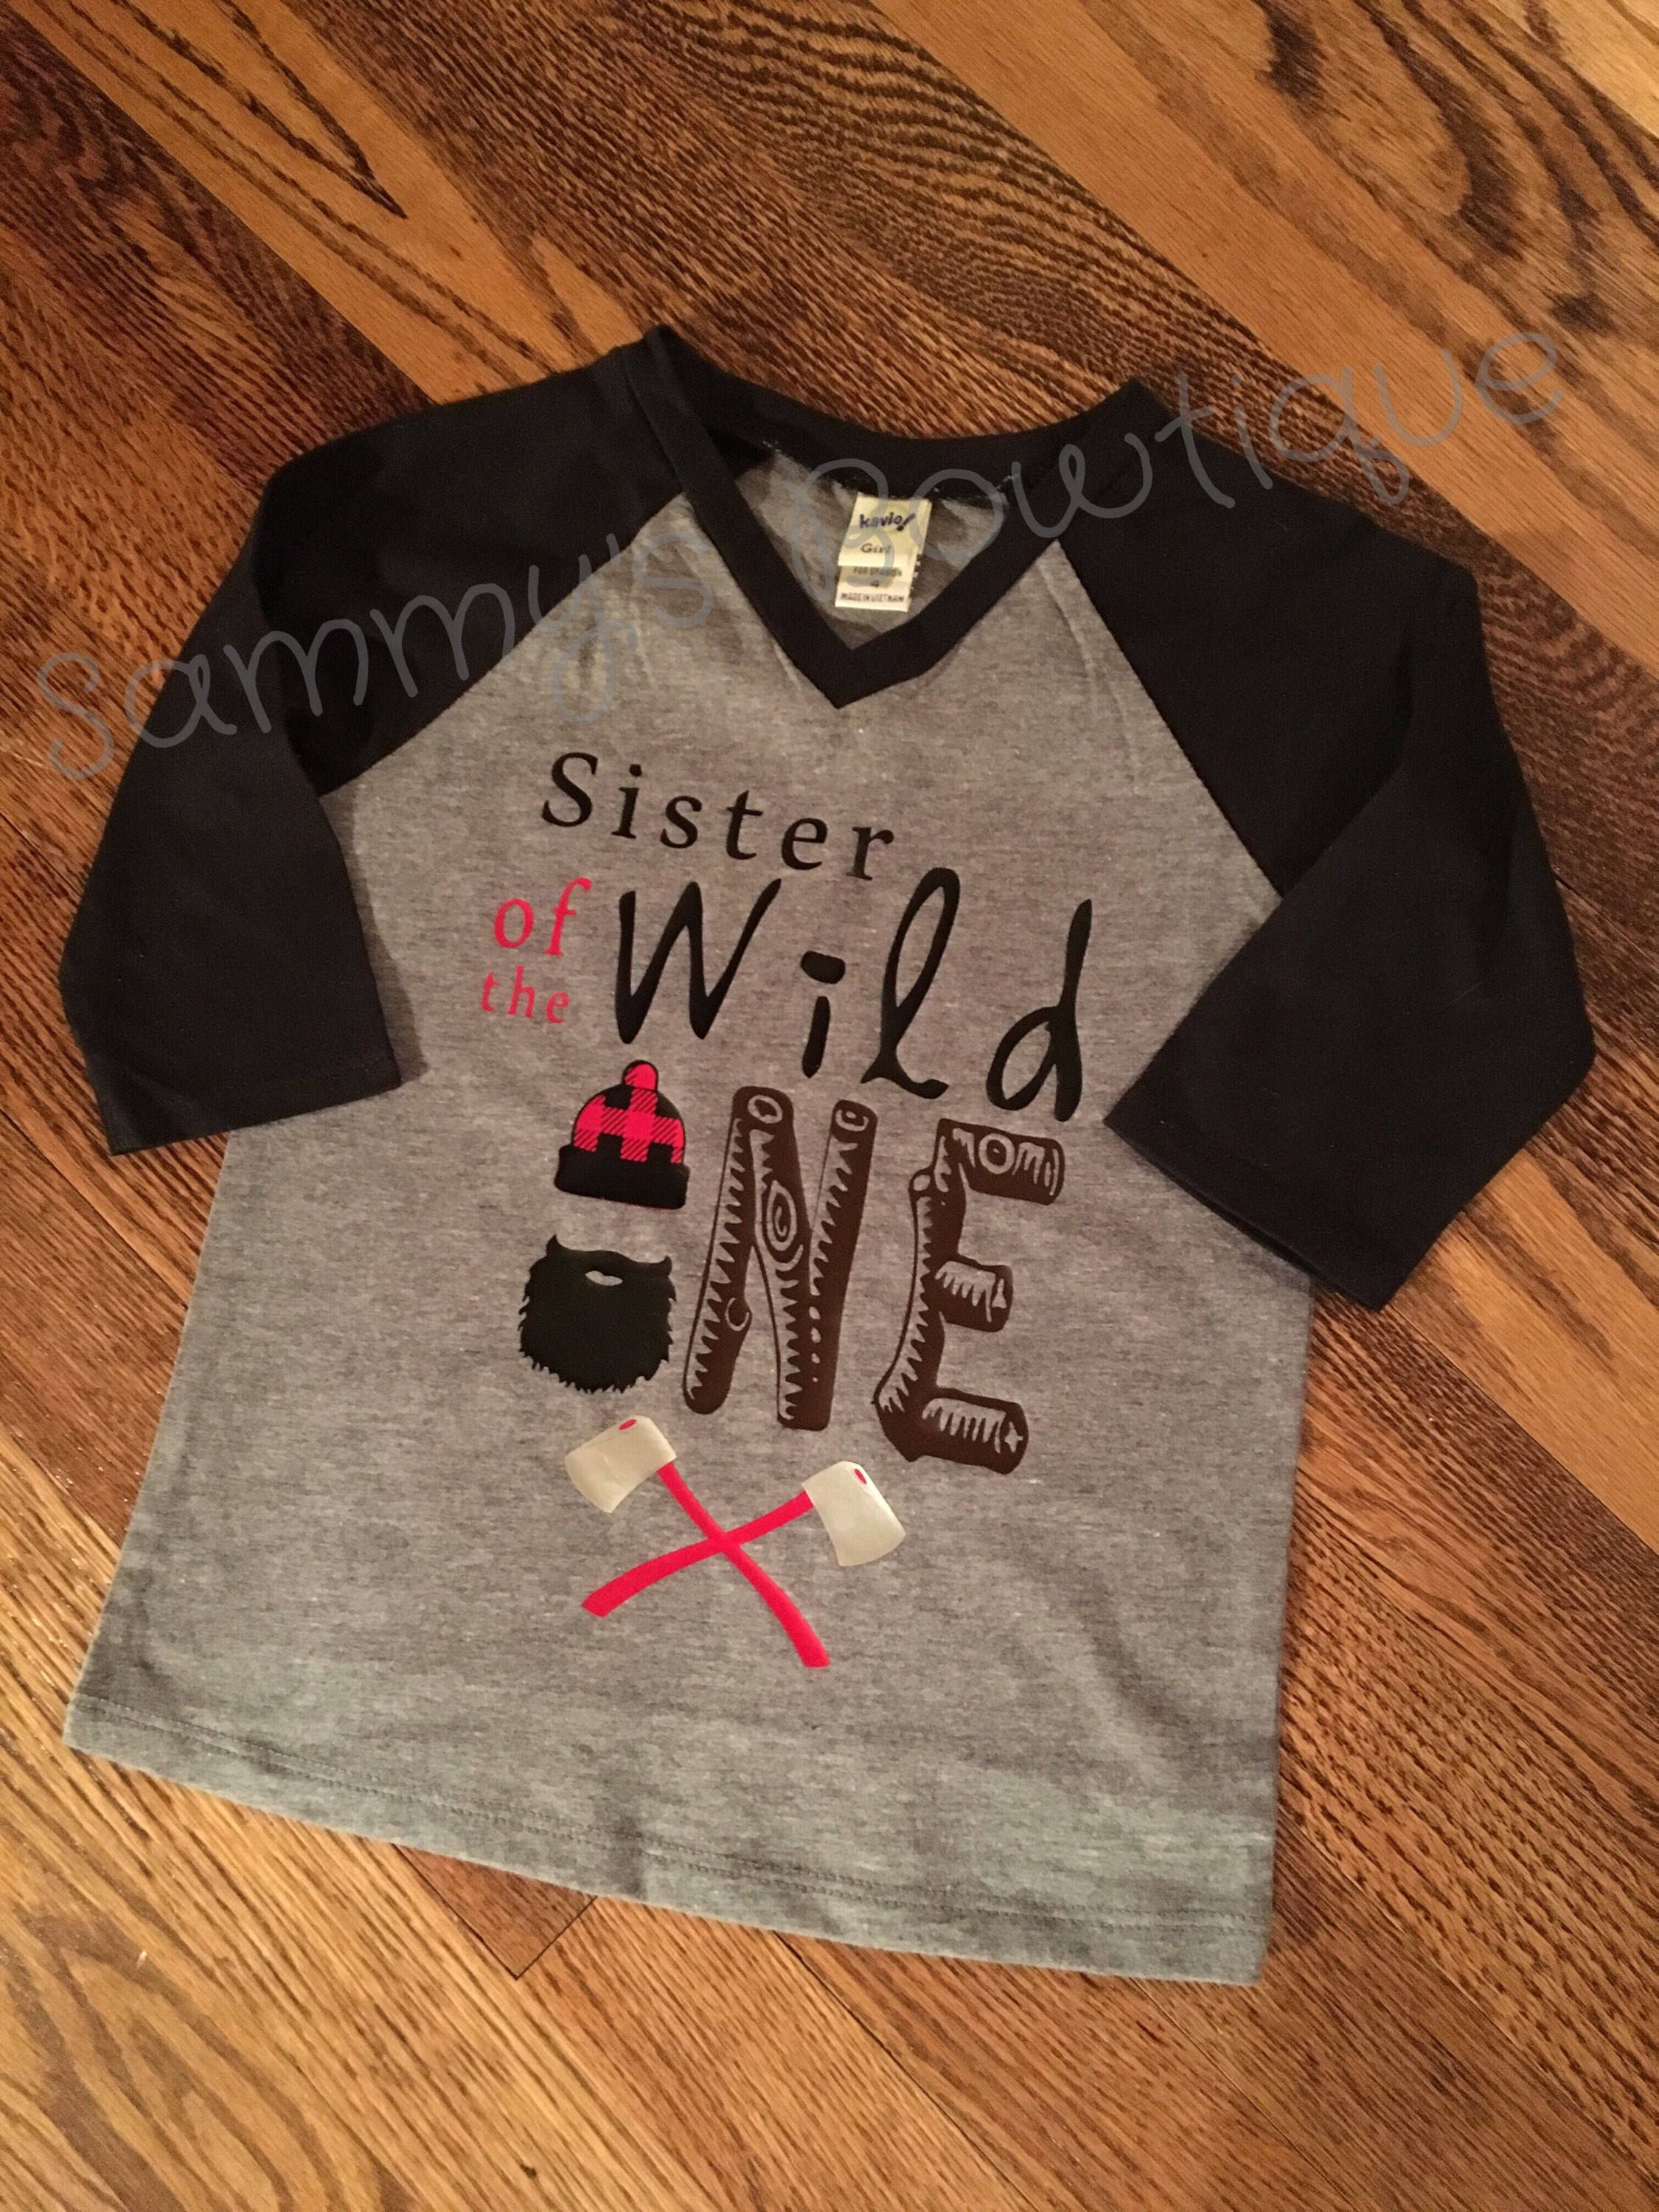 Excited To Share The Latest Addition My Etsy Shop Sister Of Wild One First Birthday Shirt Lumberjack Boy